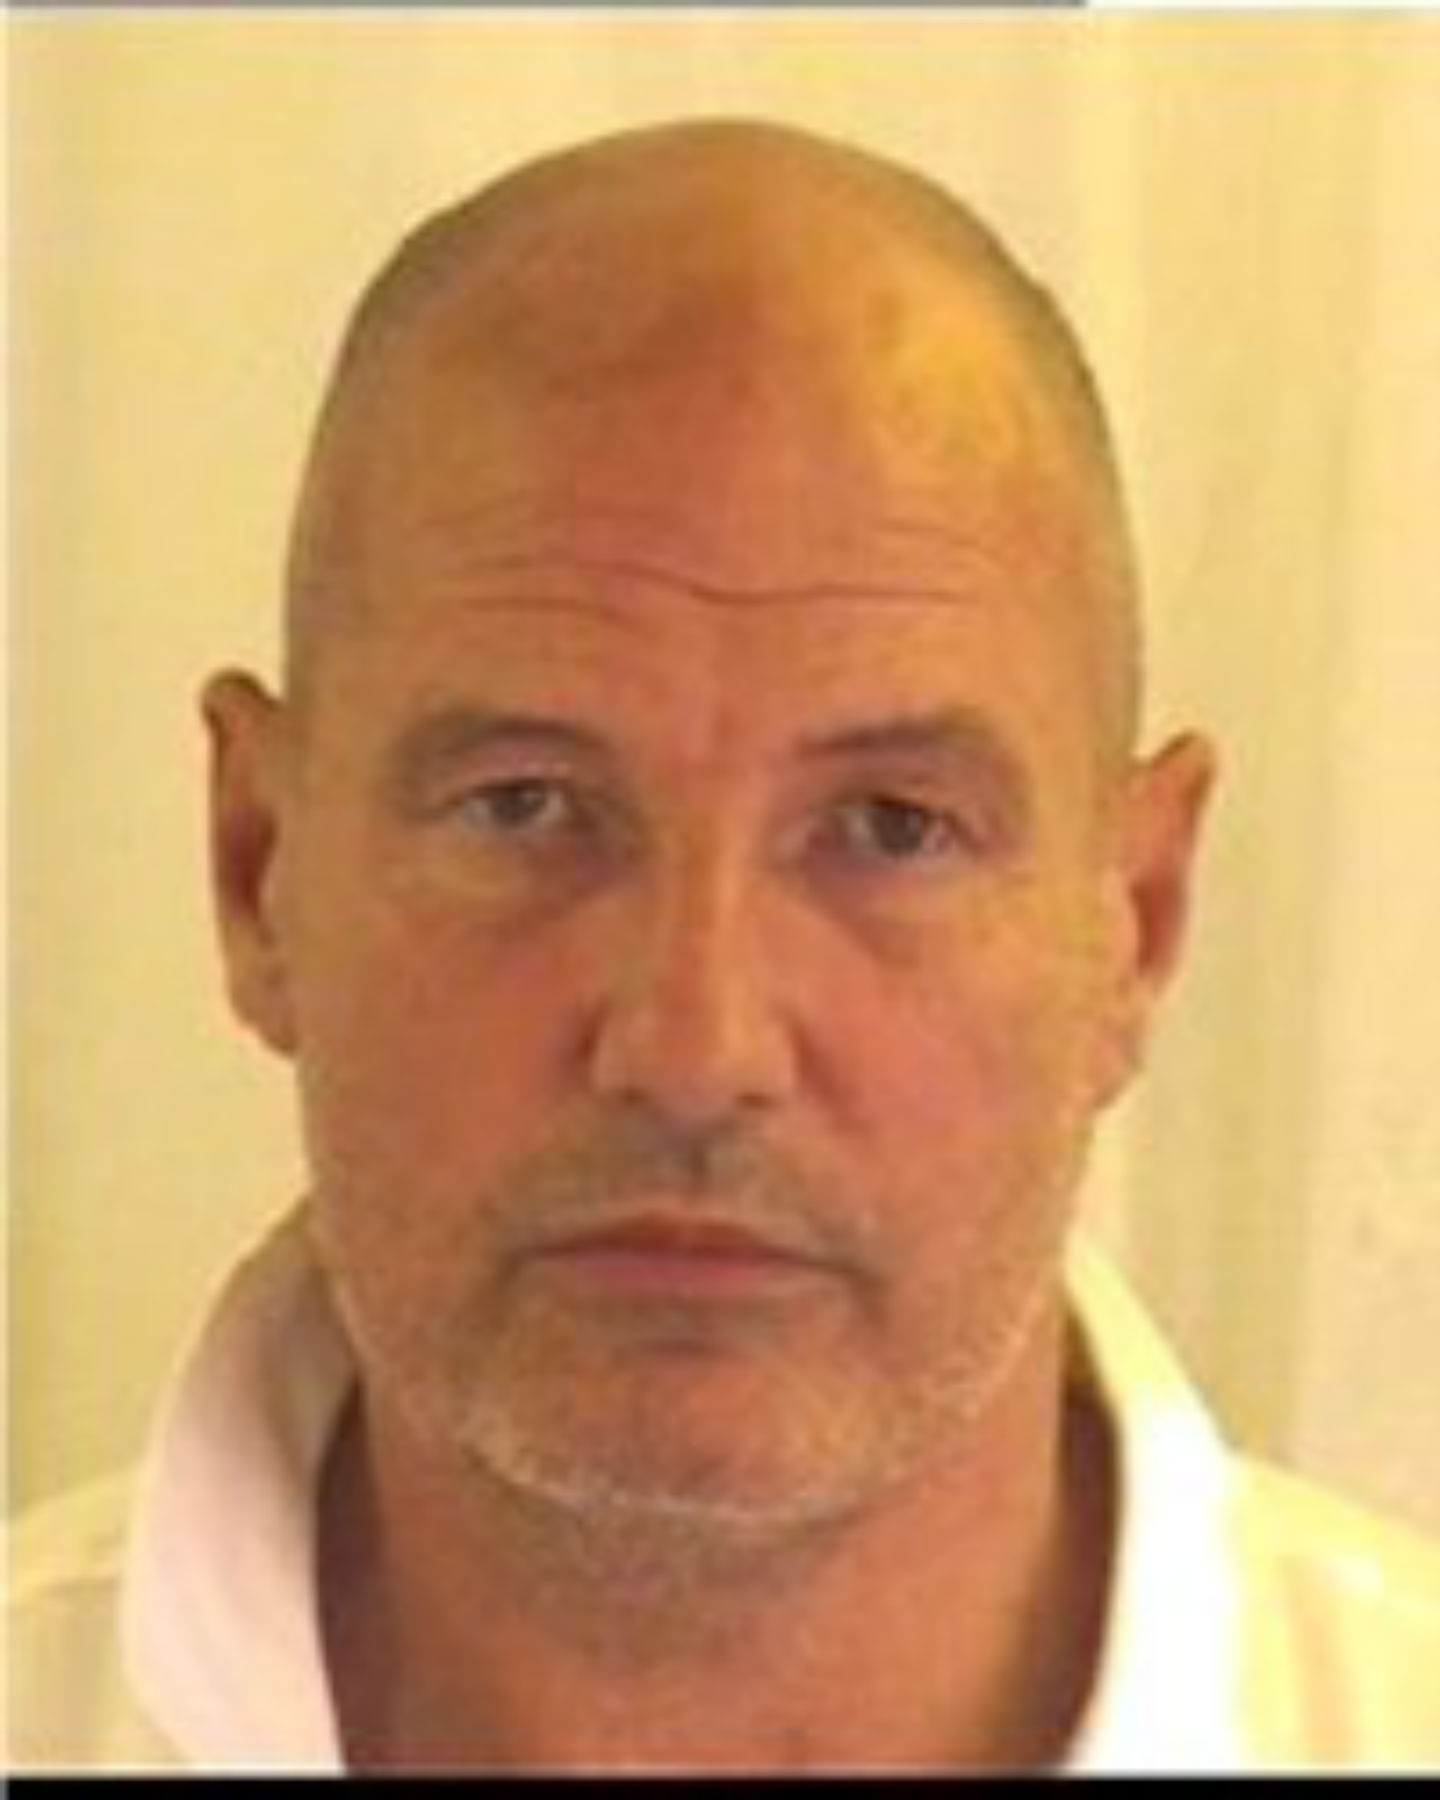 Search is on for missing prisoner